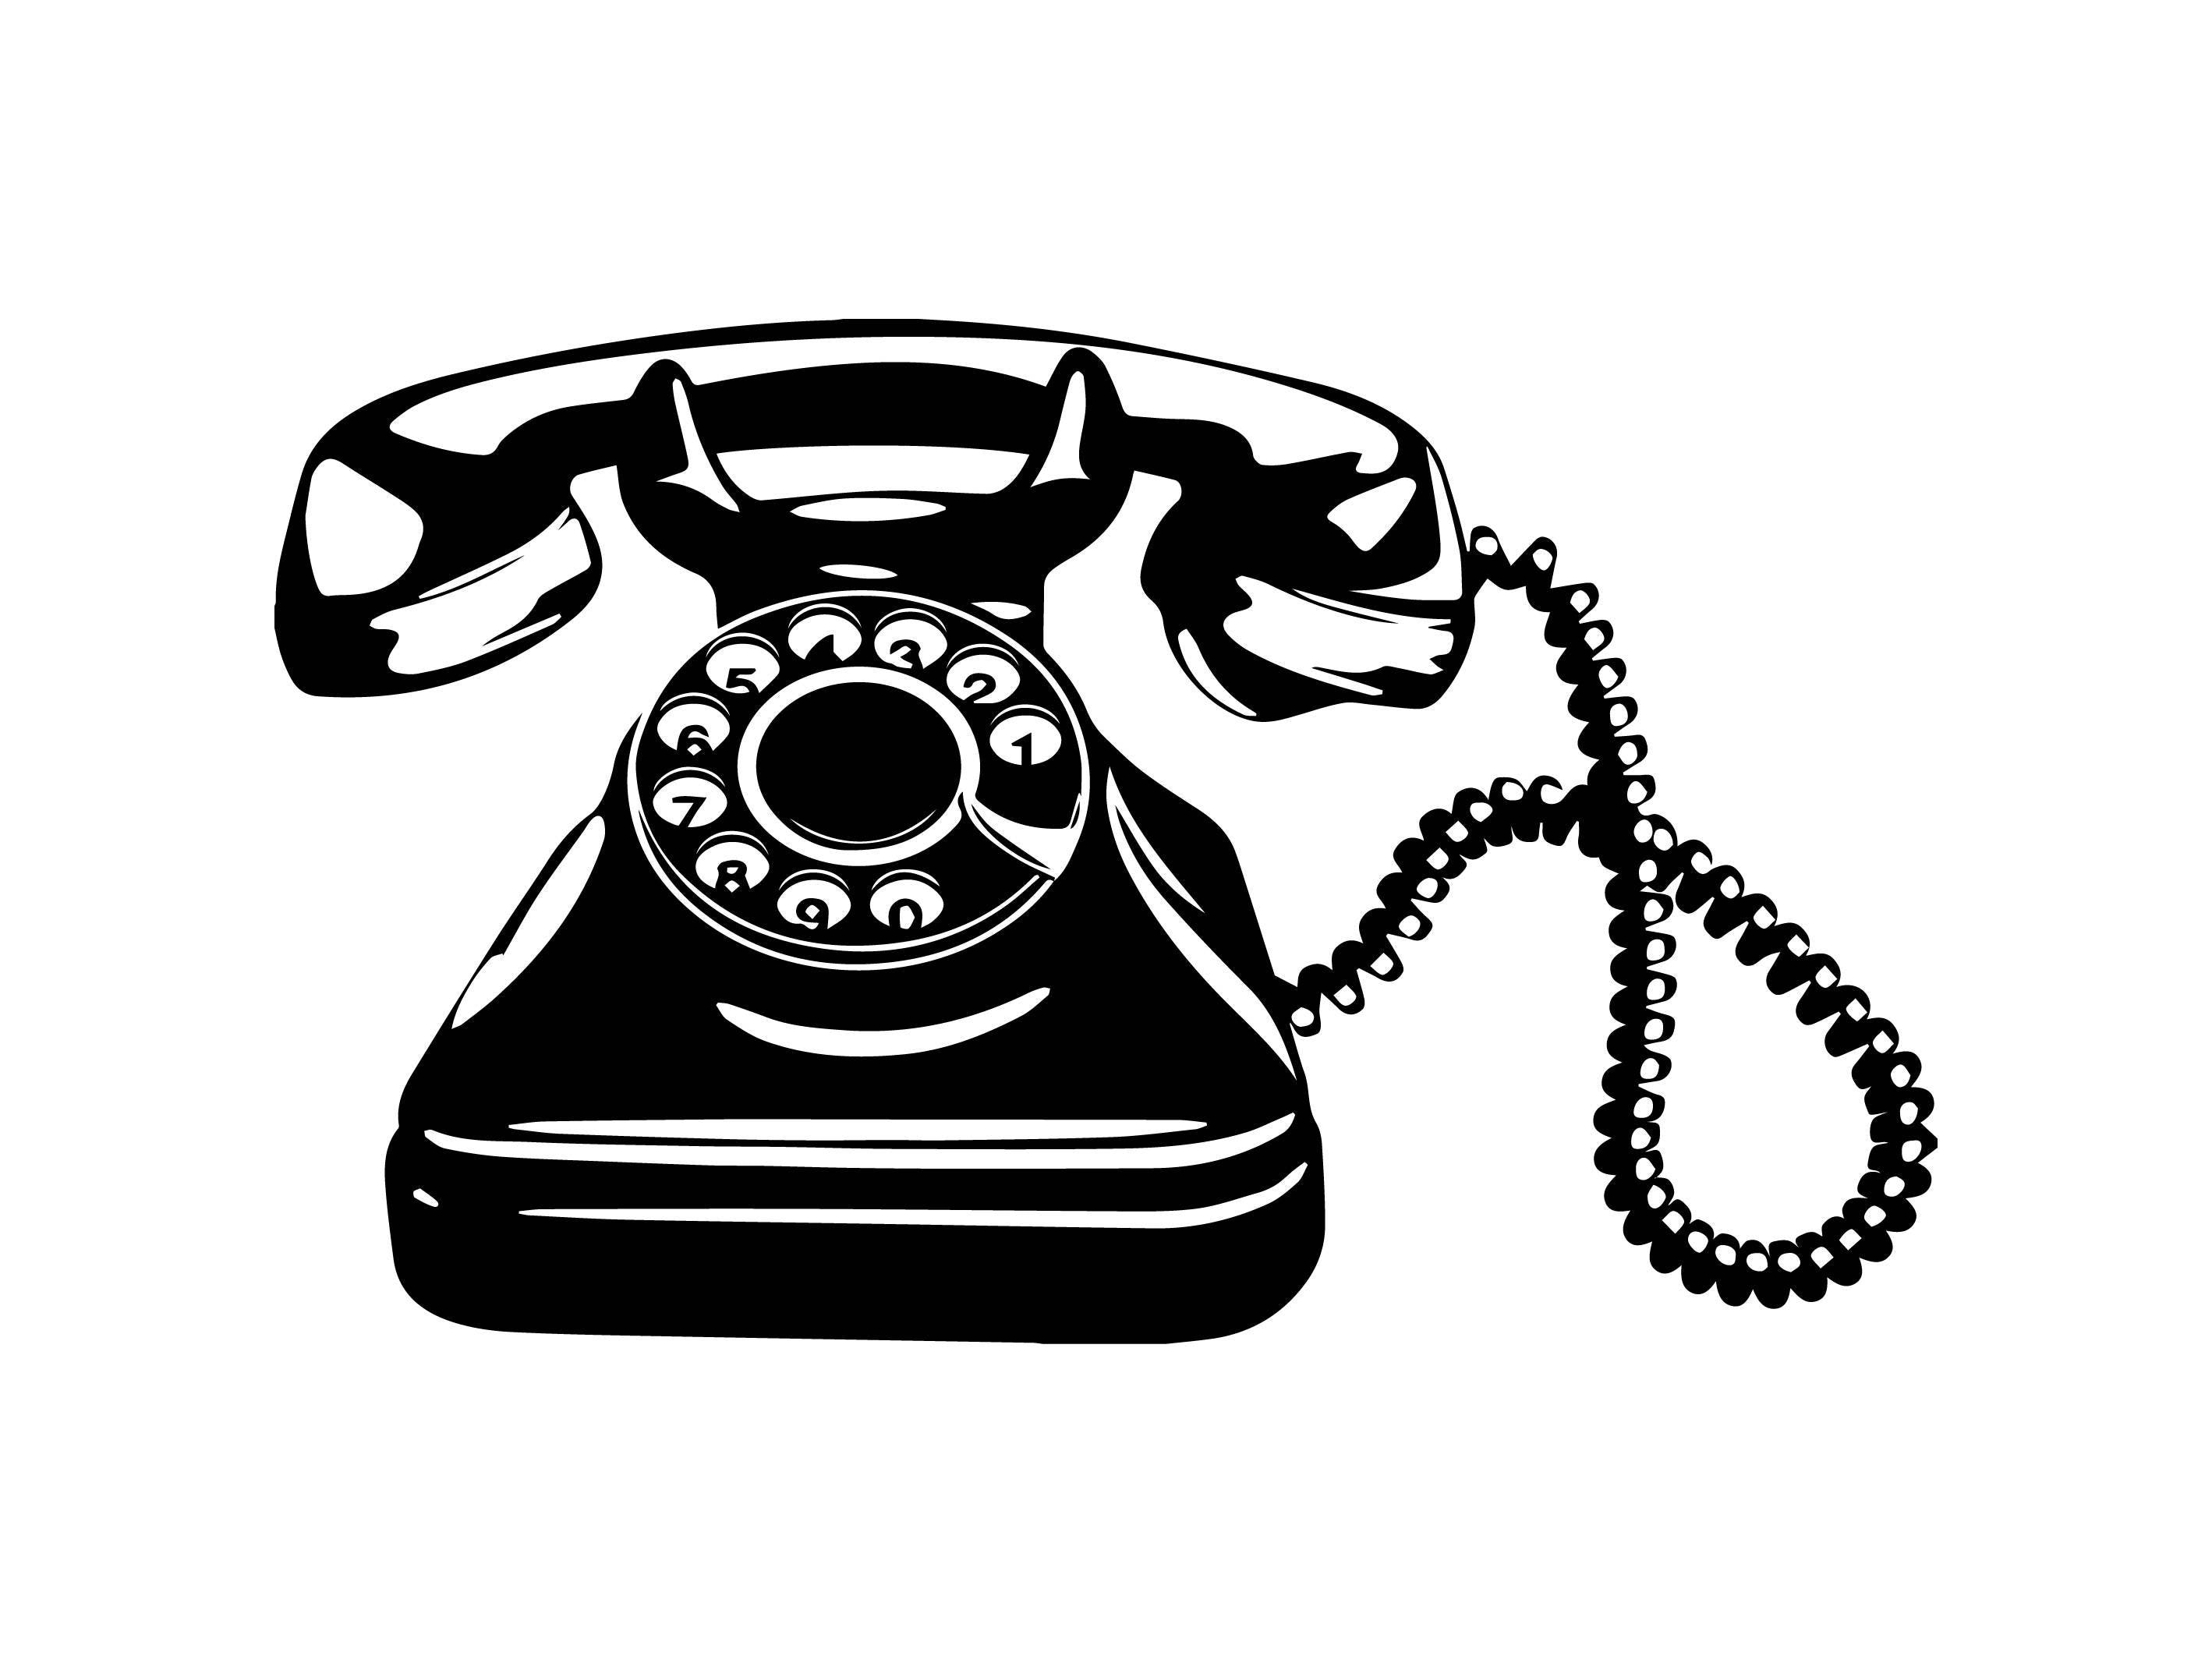 phone antique telephone retro old communication receiver classic  svg  eps  png vector space